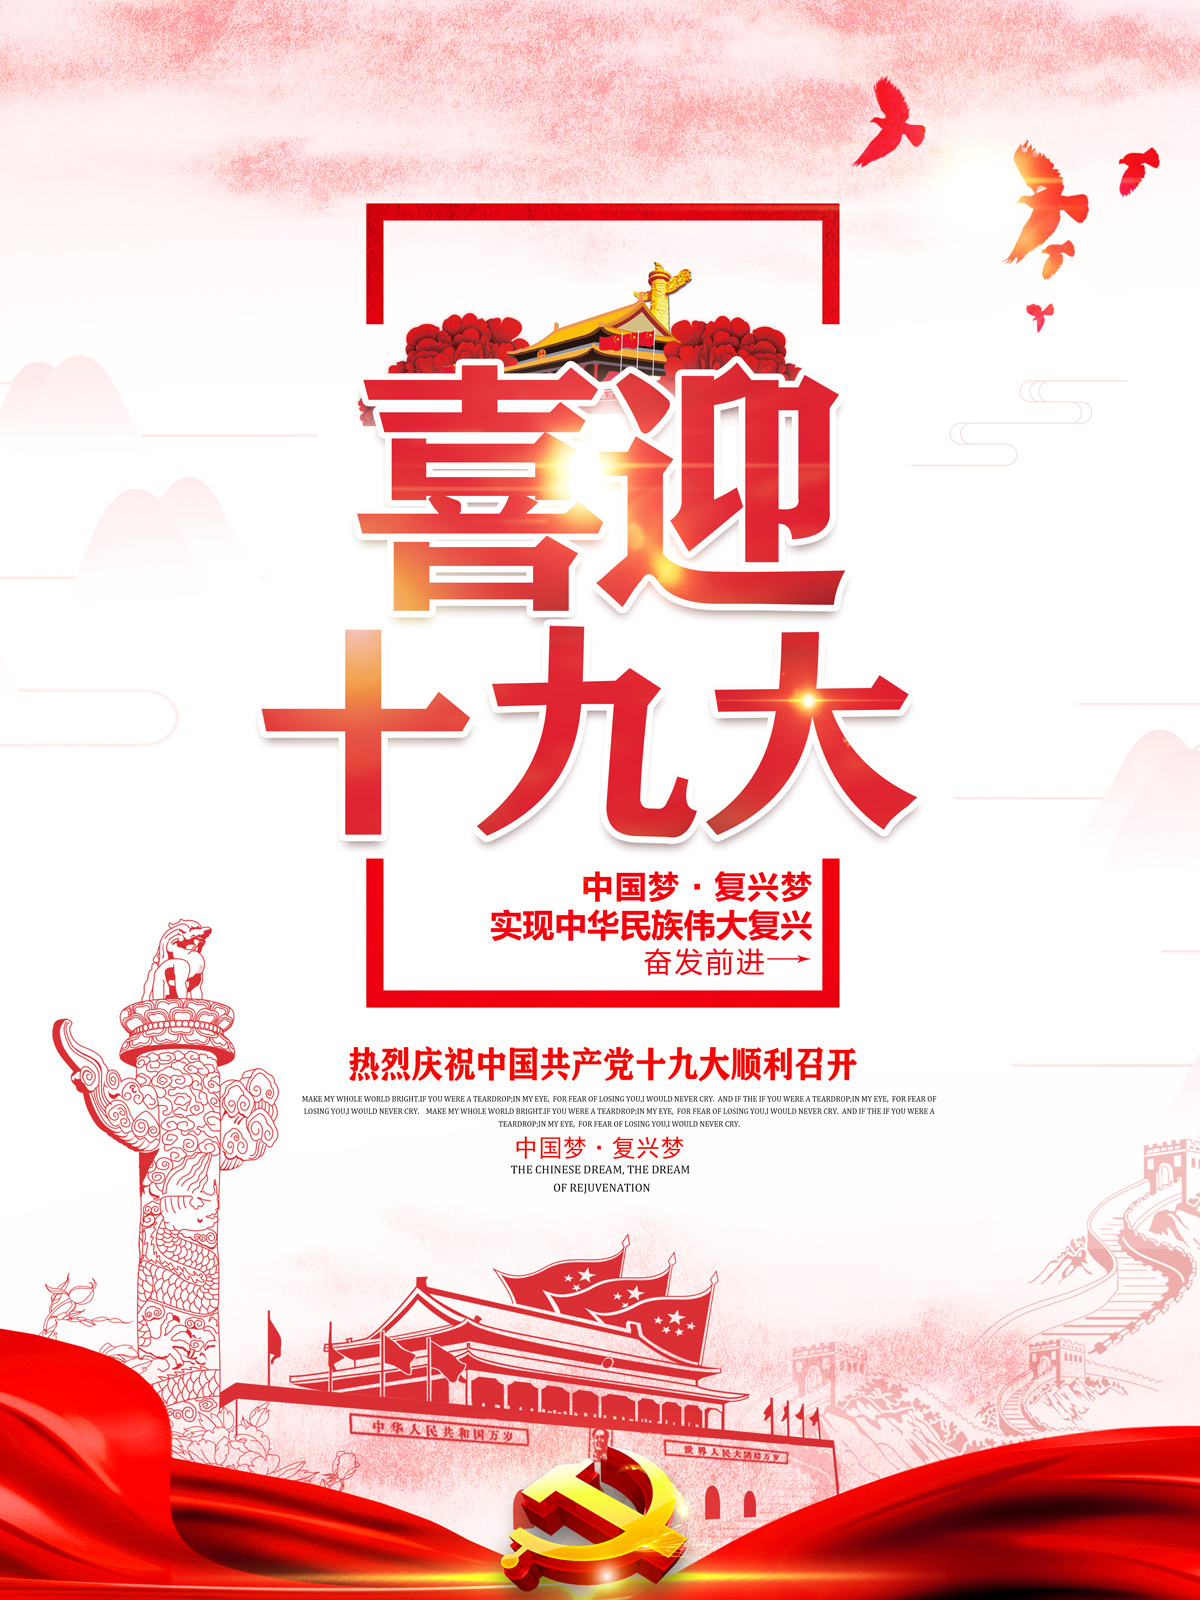 19th National Congress of the Communist Party of China – PSD File Free Download #.3